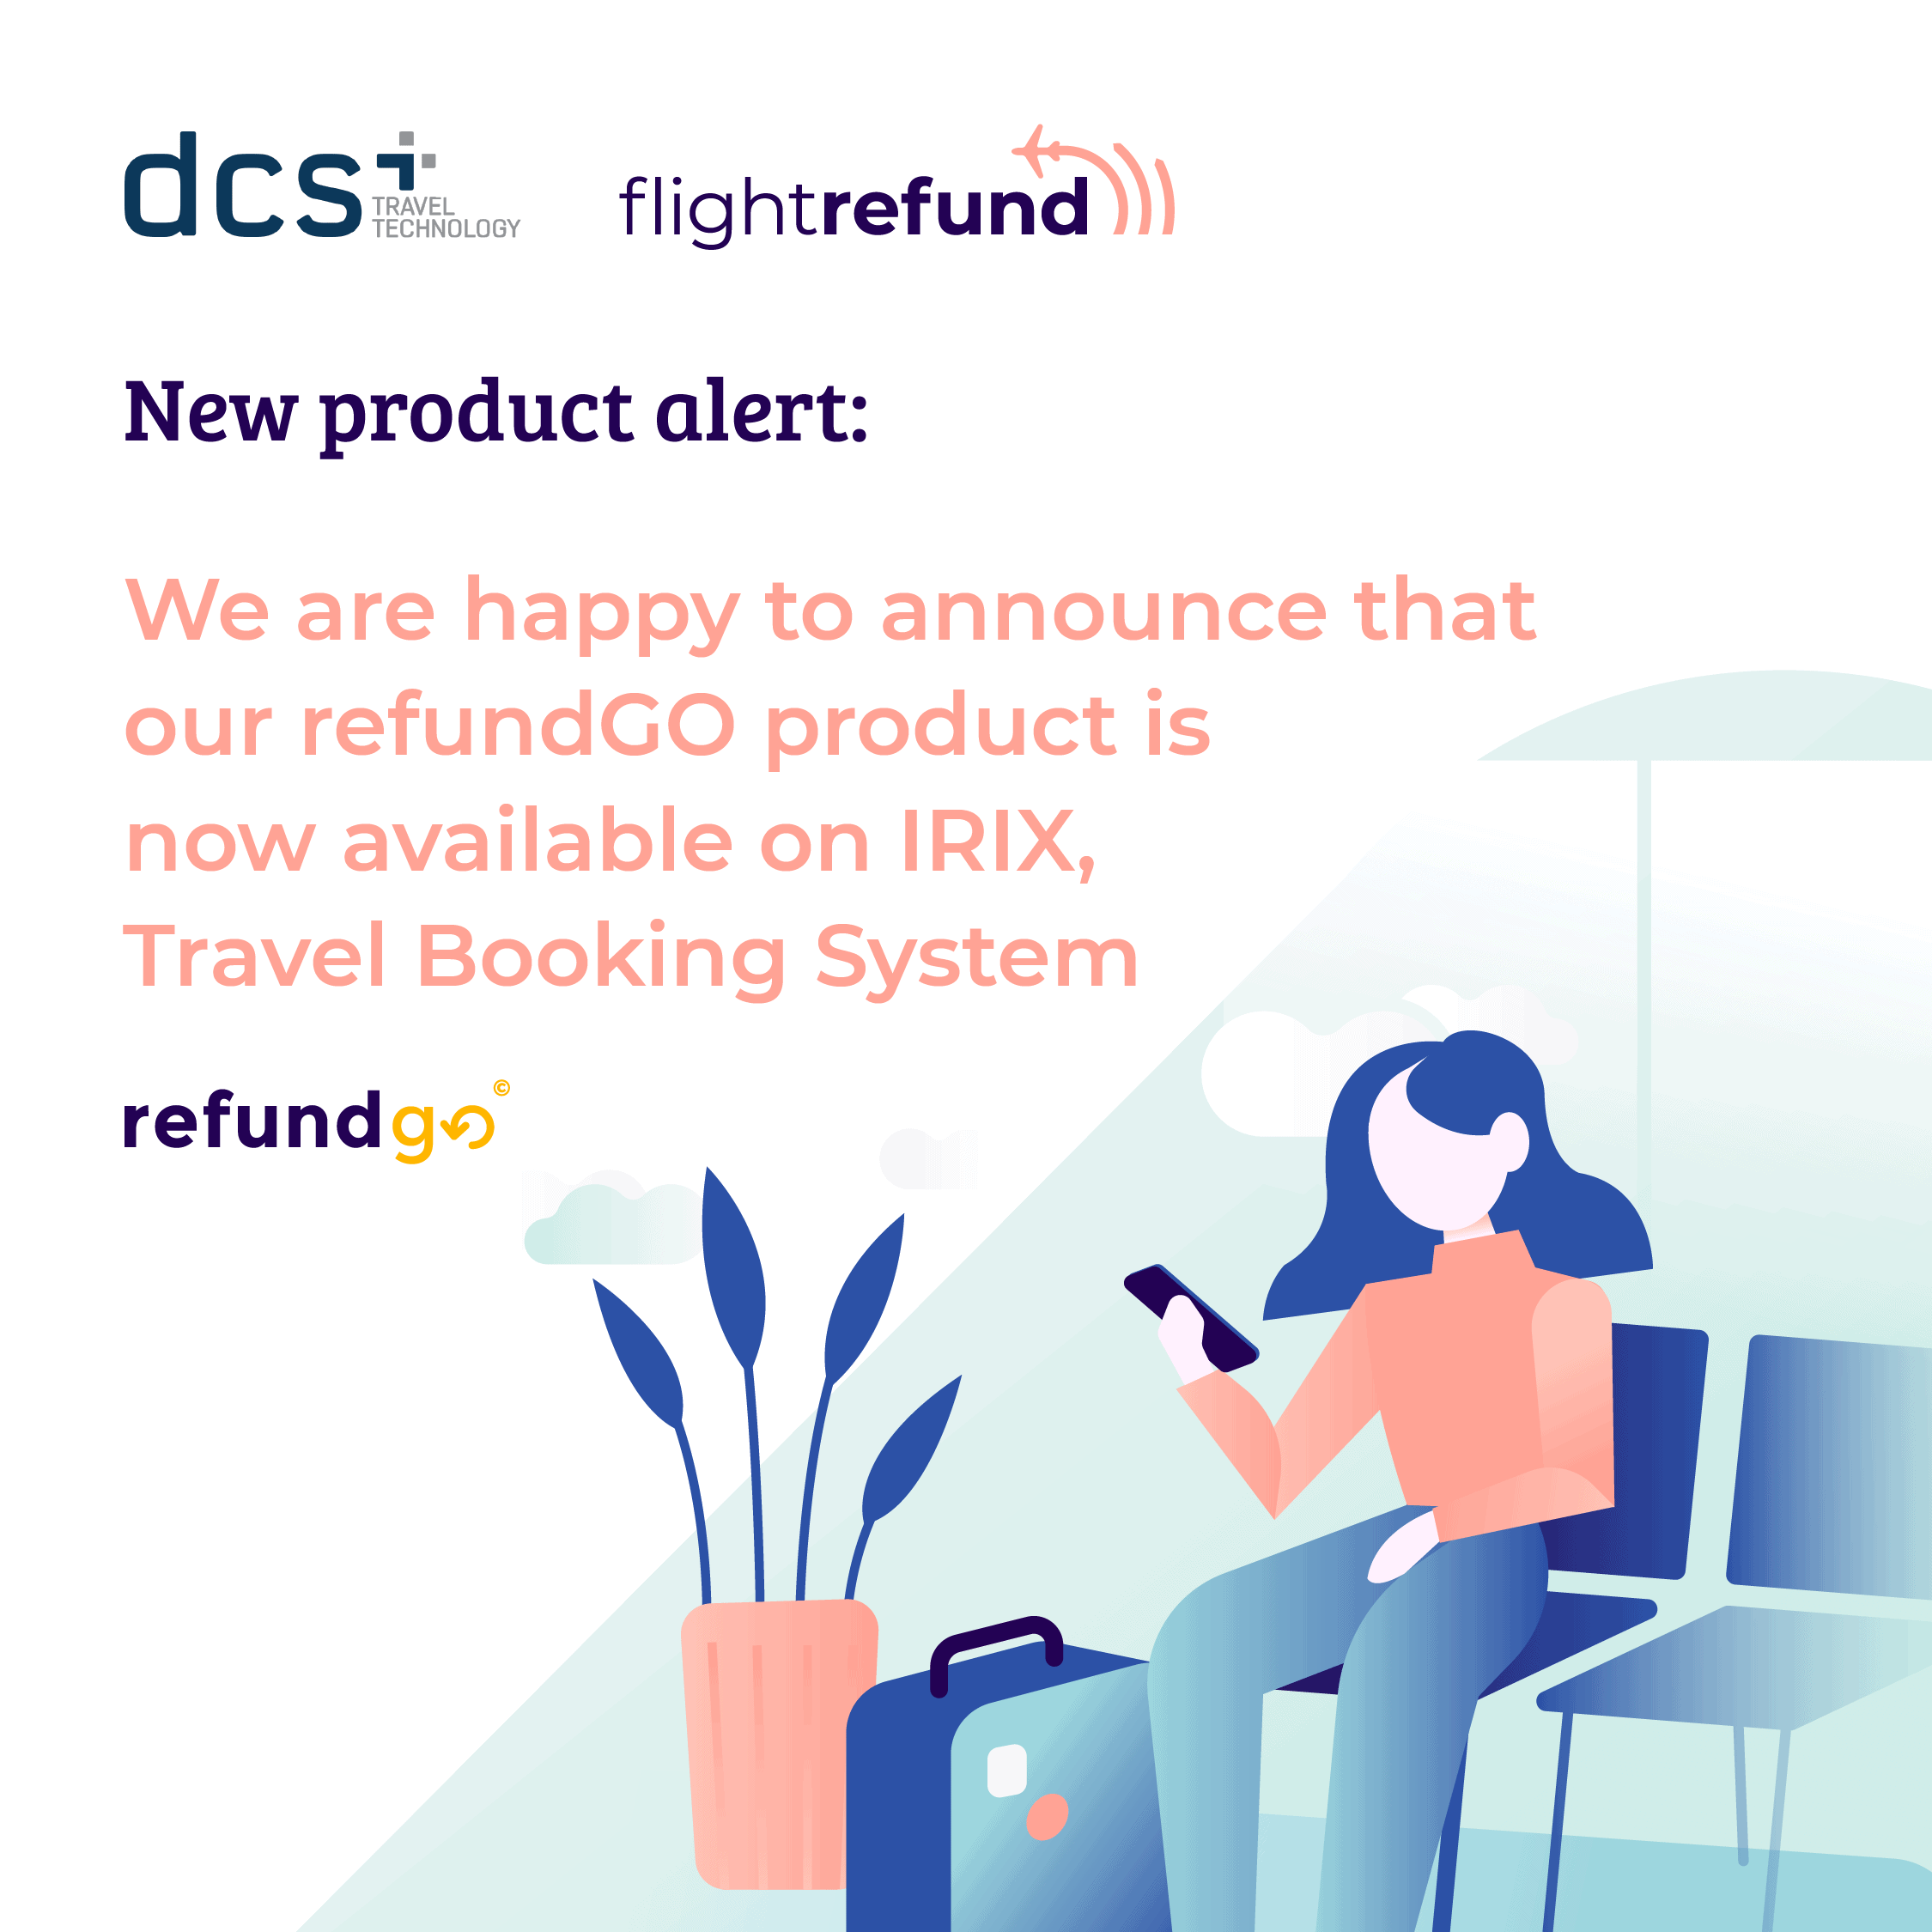 Why is REFUNDGO good for the travelers?